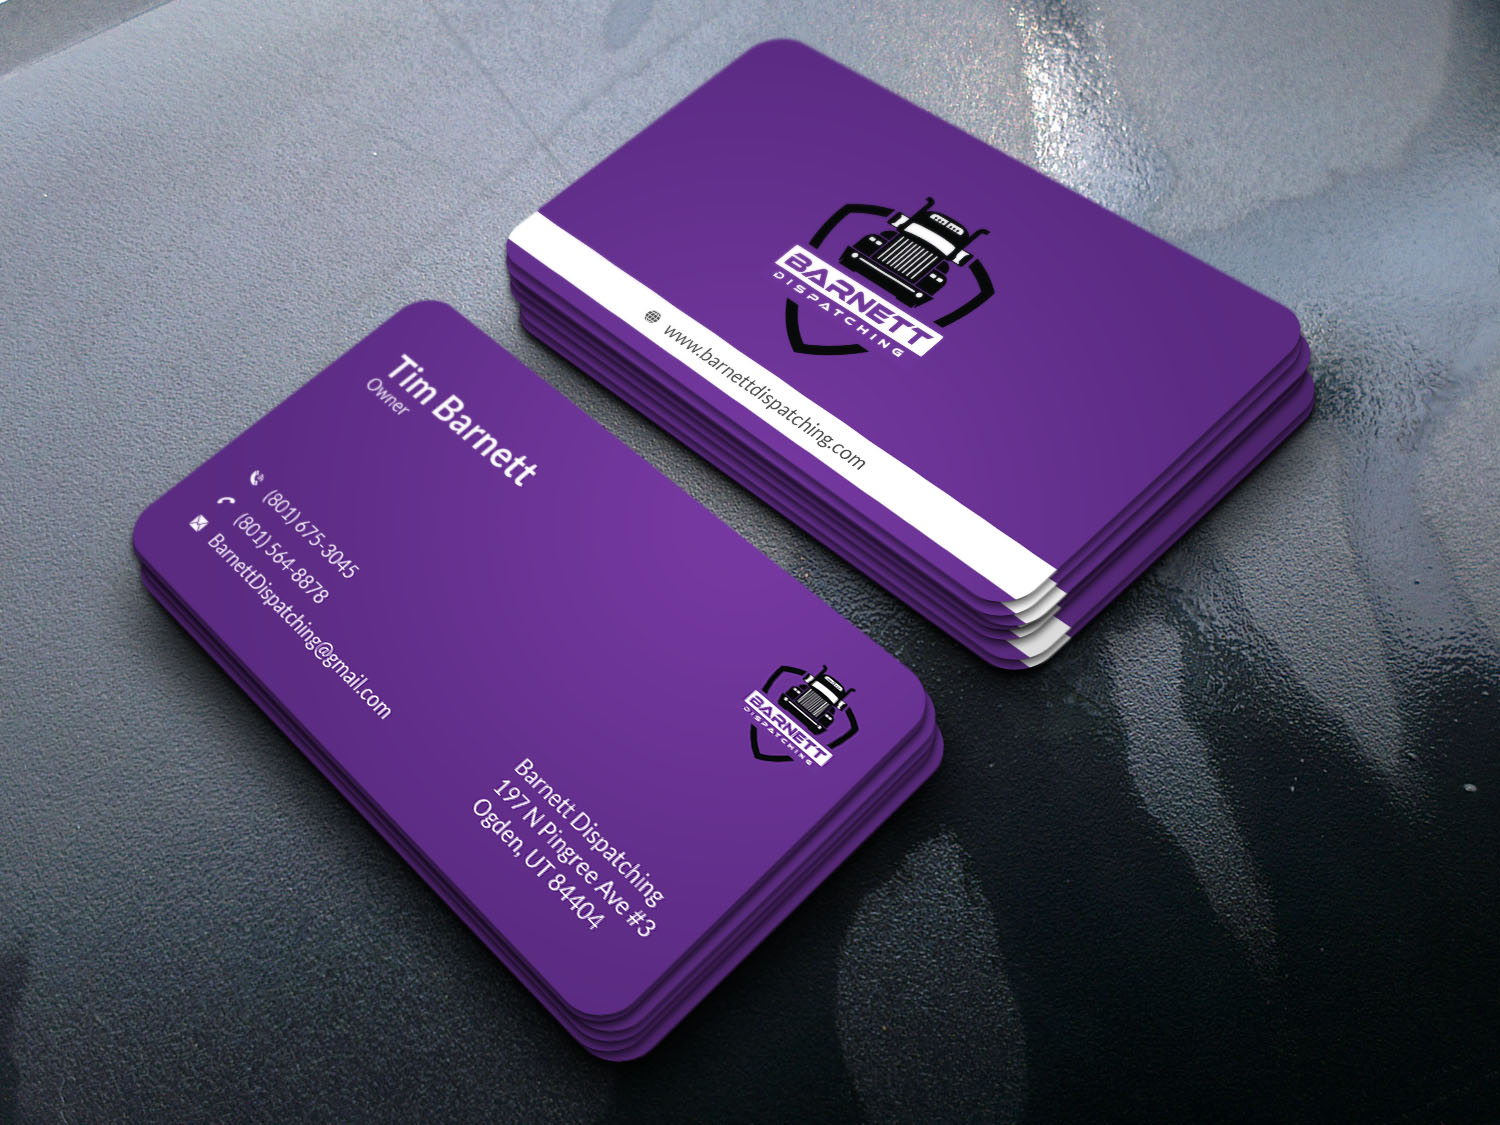 I will professional business card and logo design.